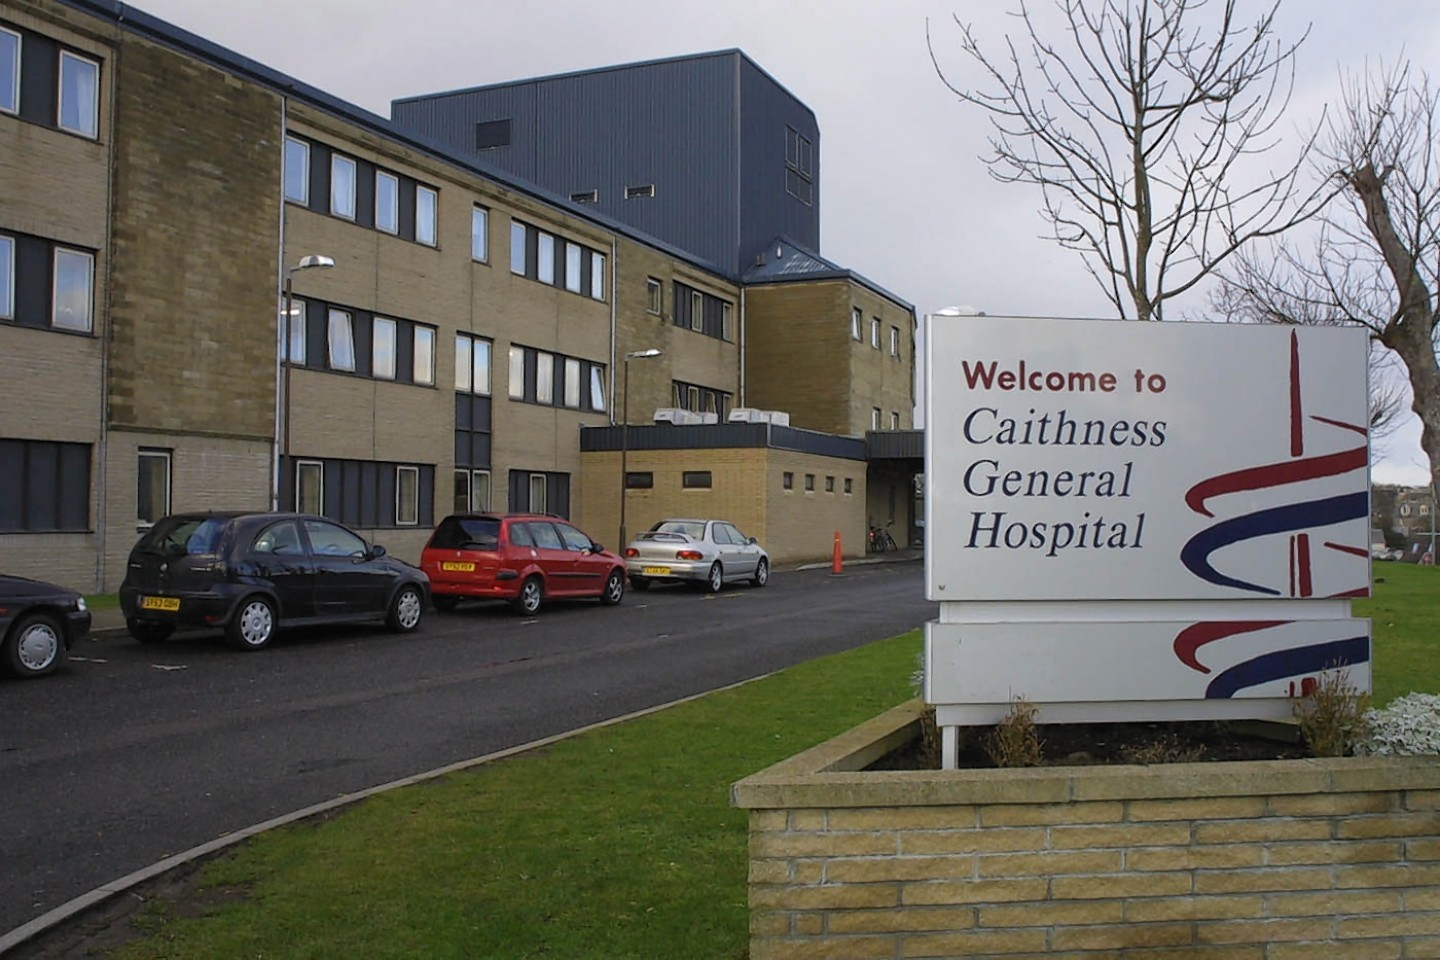 Caithness General Hospital